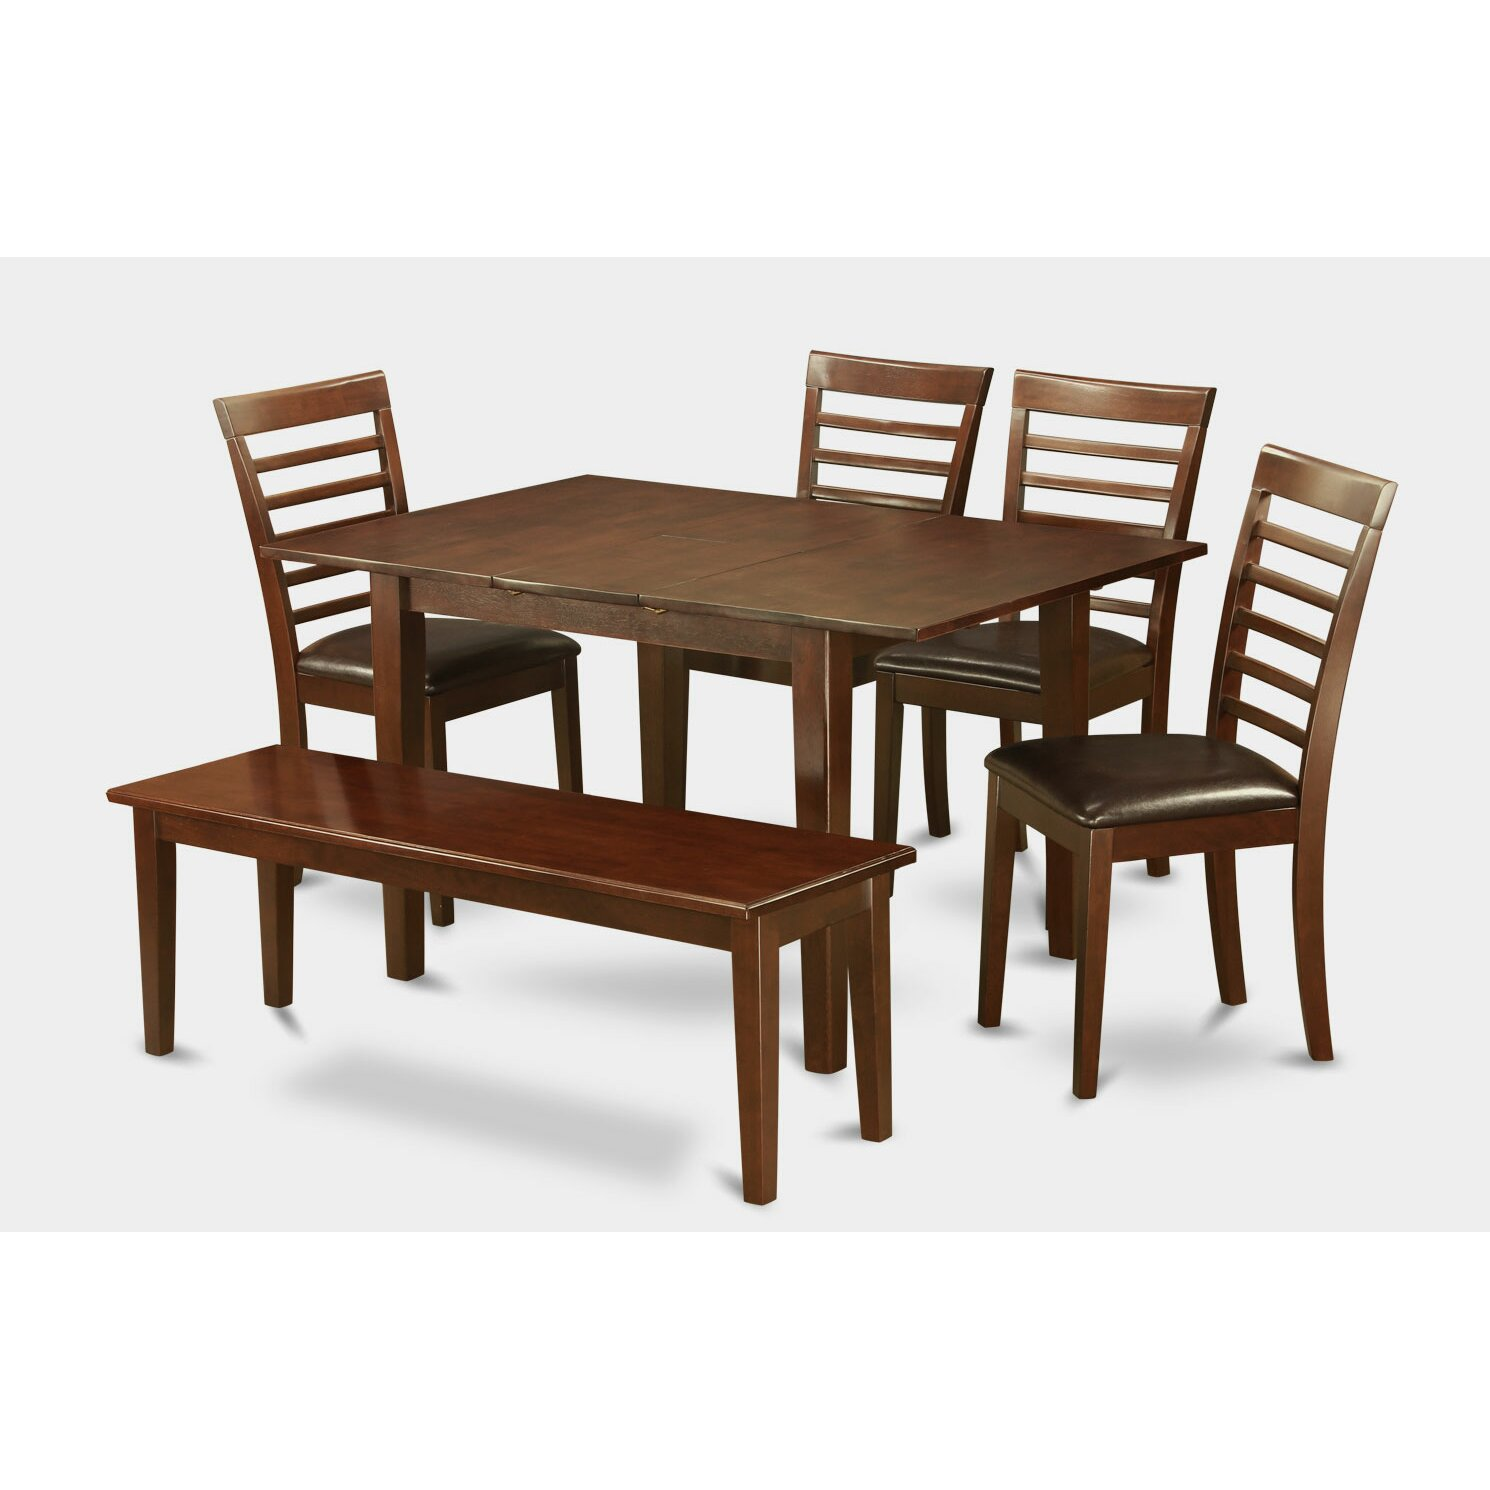 Milan 6 piece dining set wayfair for Kitchen table set 6 chairs